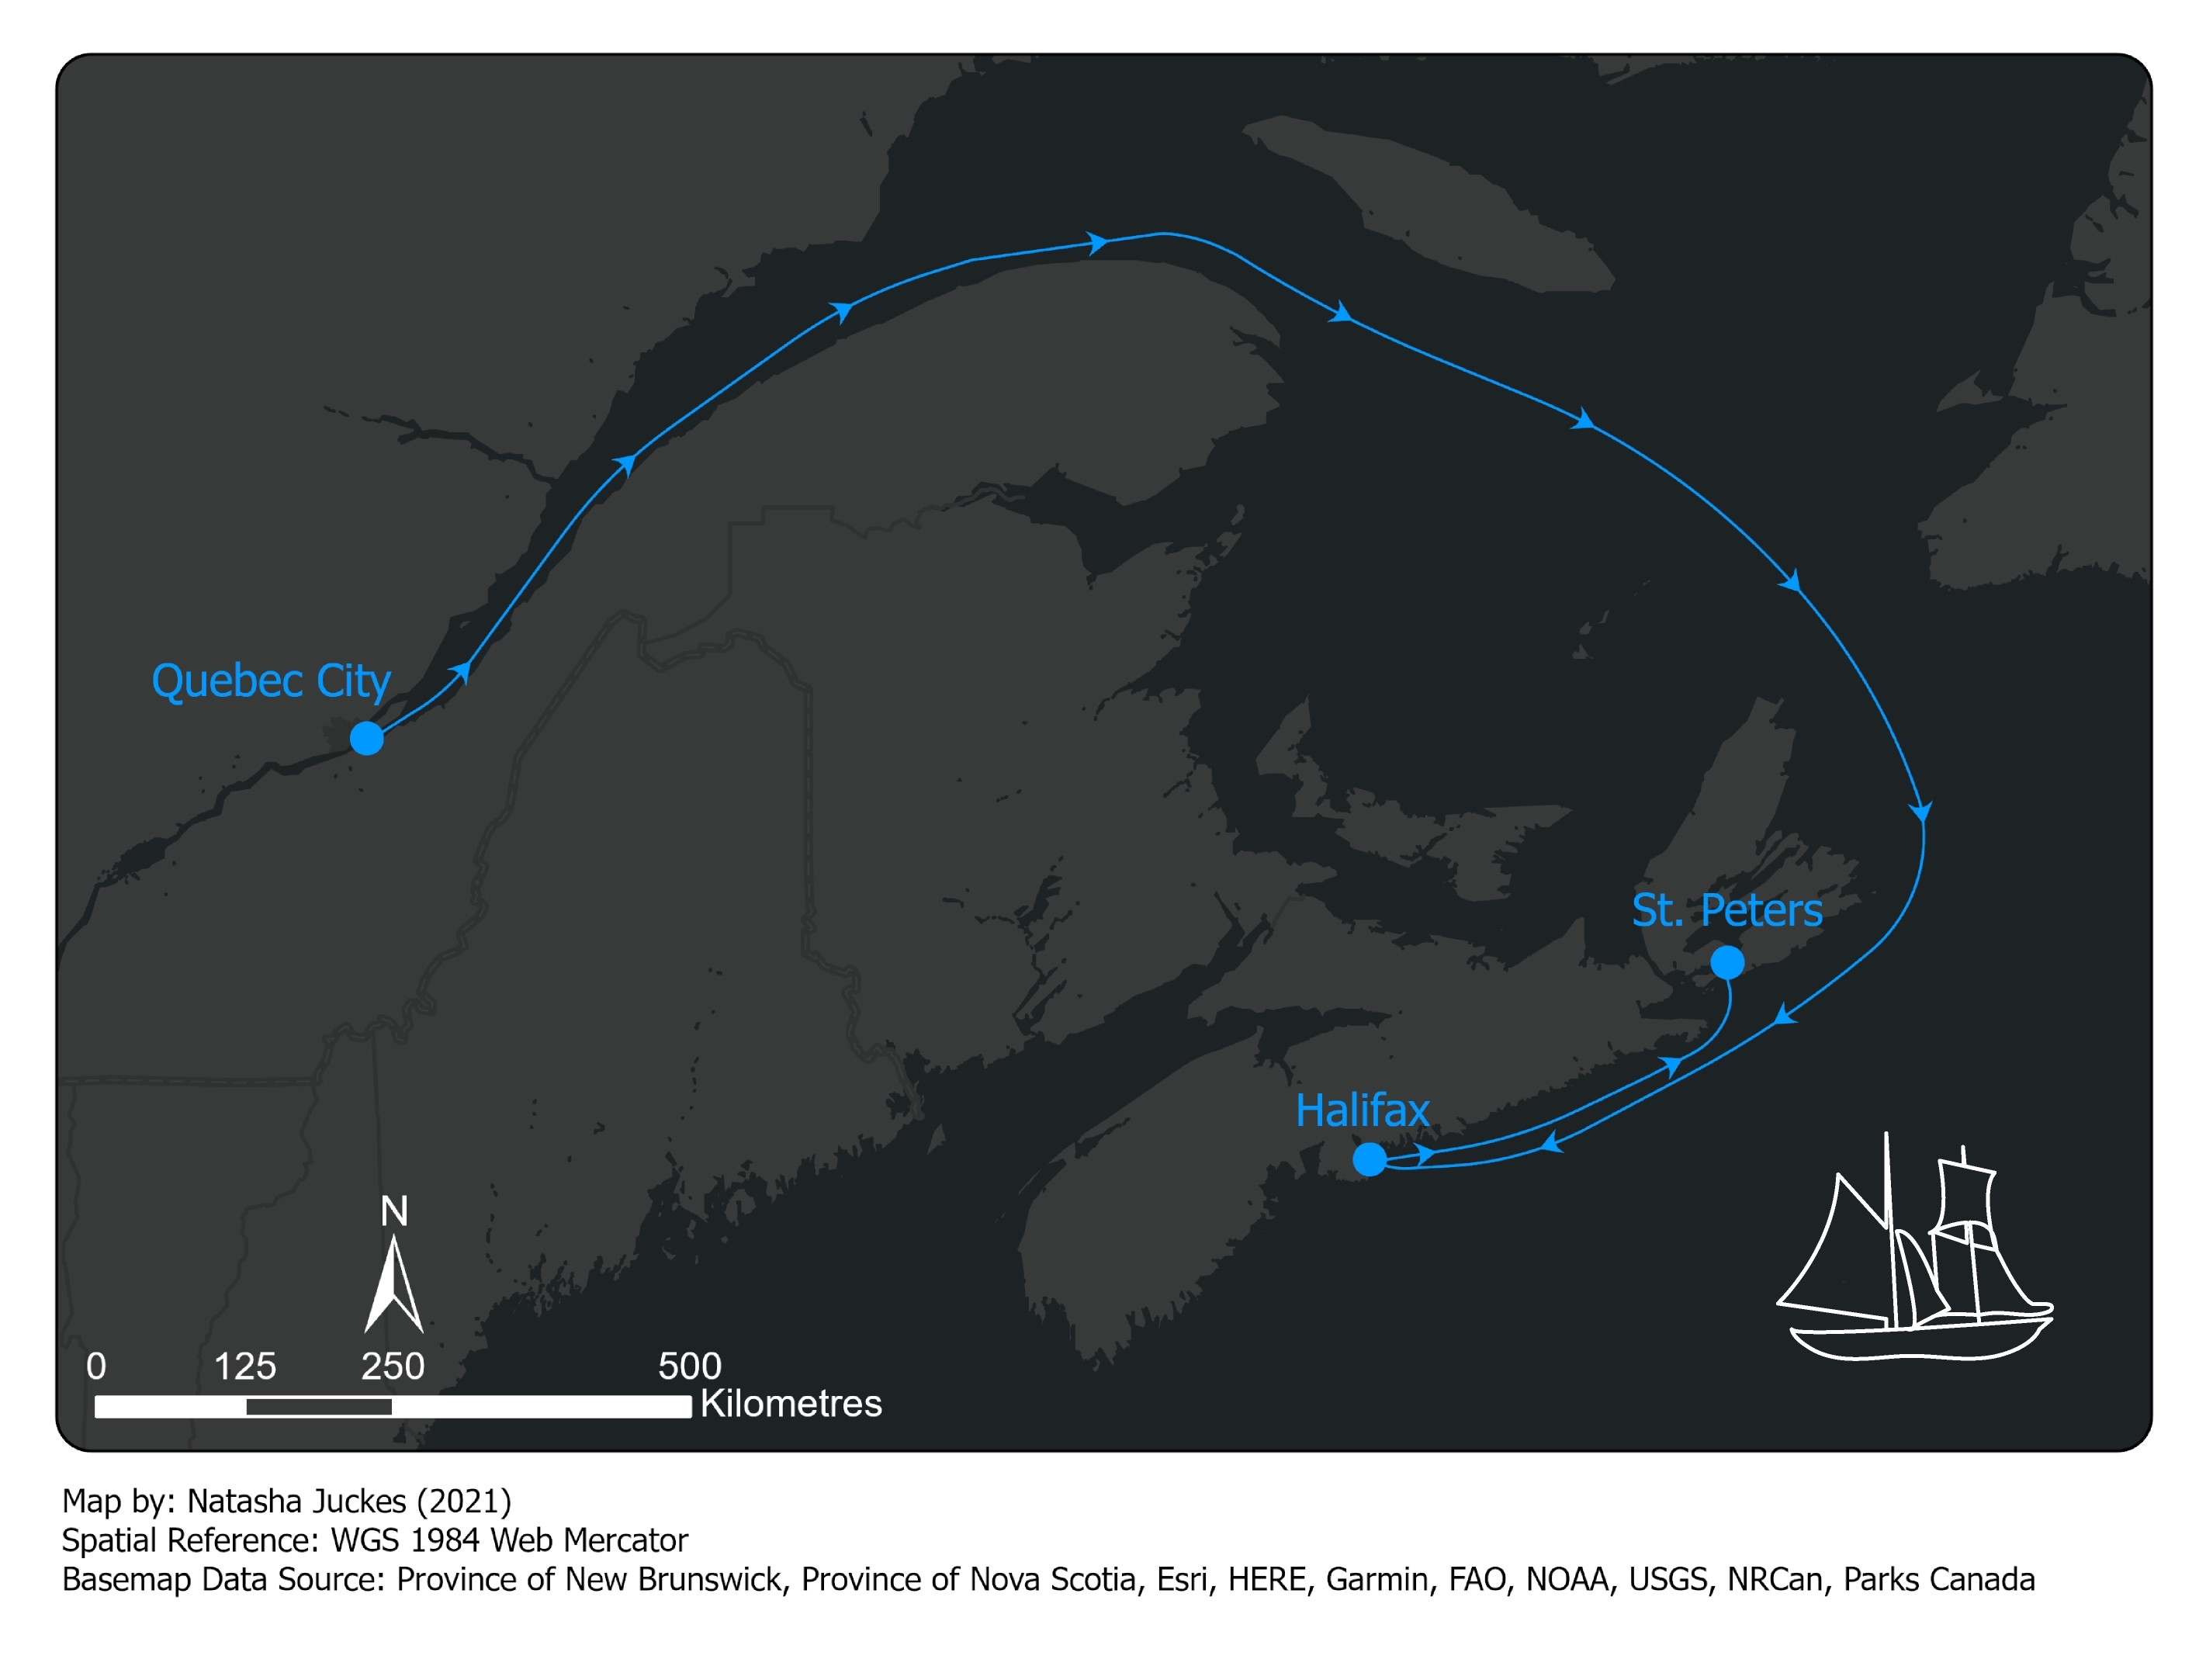 A map of the sailing route from Quebec City to Halifax and then to the St. Peters Canal that Natasha Juckes completed as one of her adventurous journeys for the Duke of Edinburgh's Award.